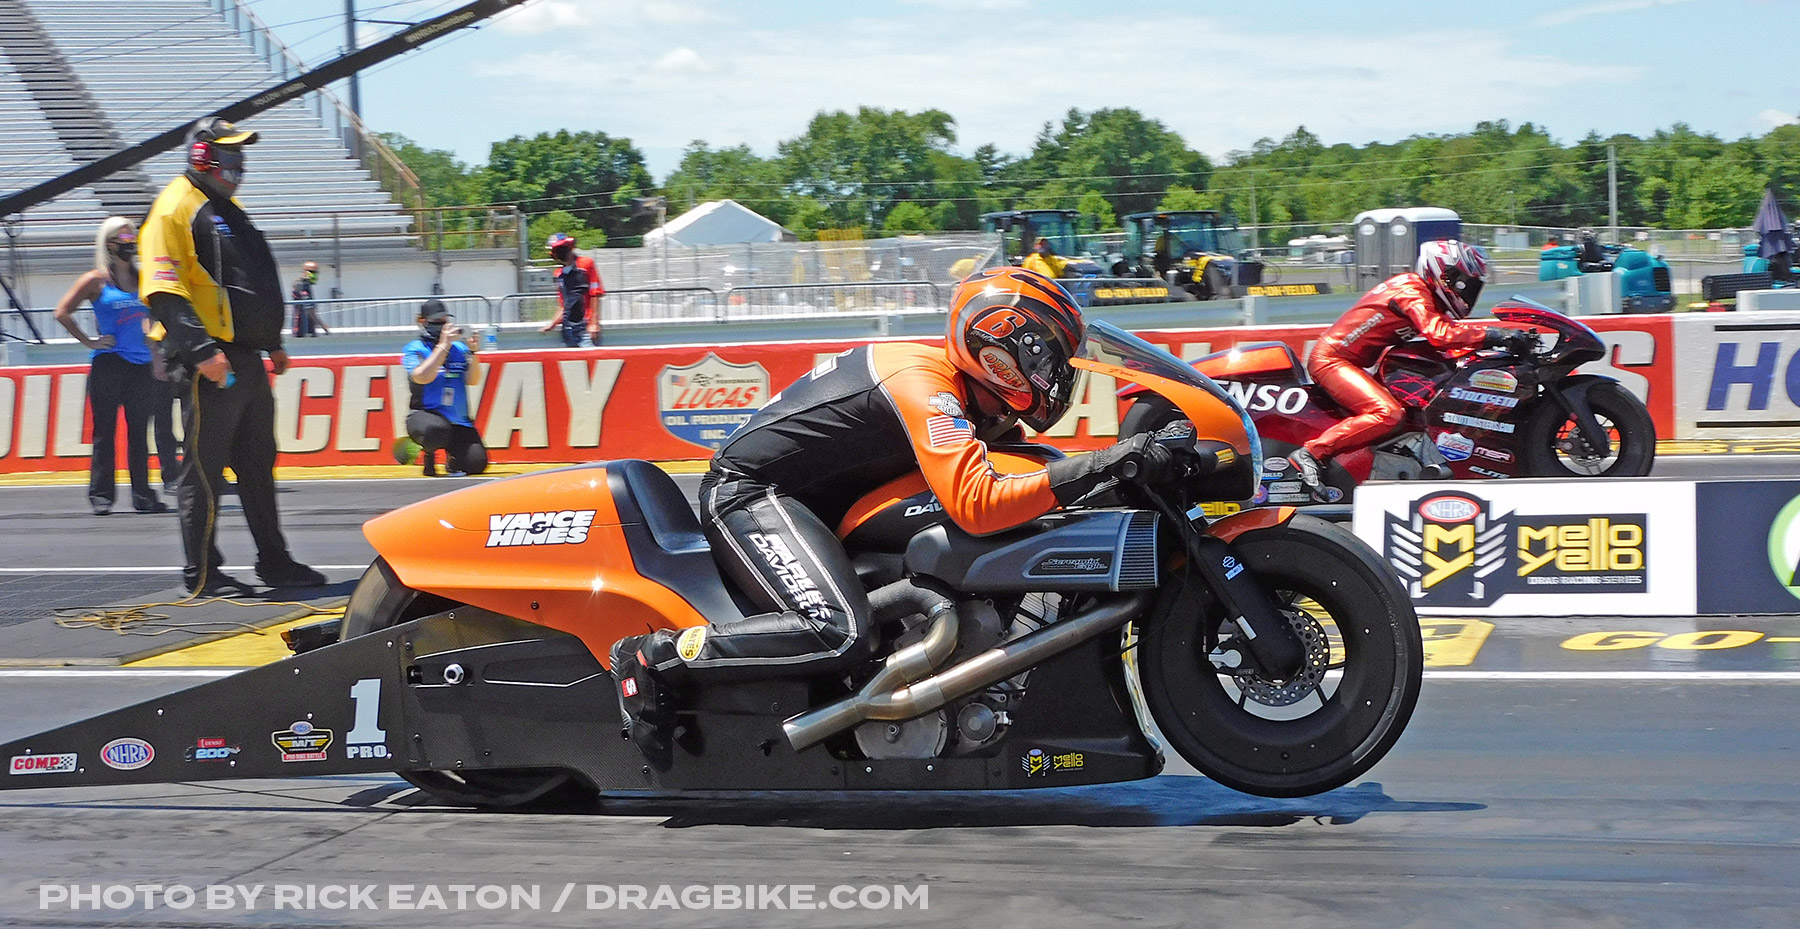 Andrew hines - 2020 NHRA Pro Stock Motorcycles Indy